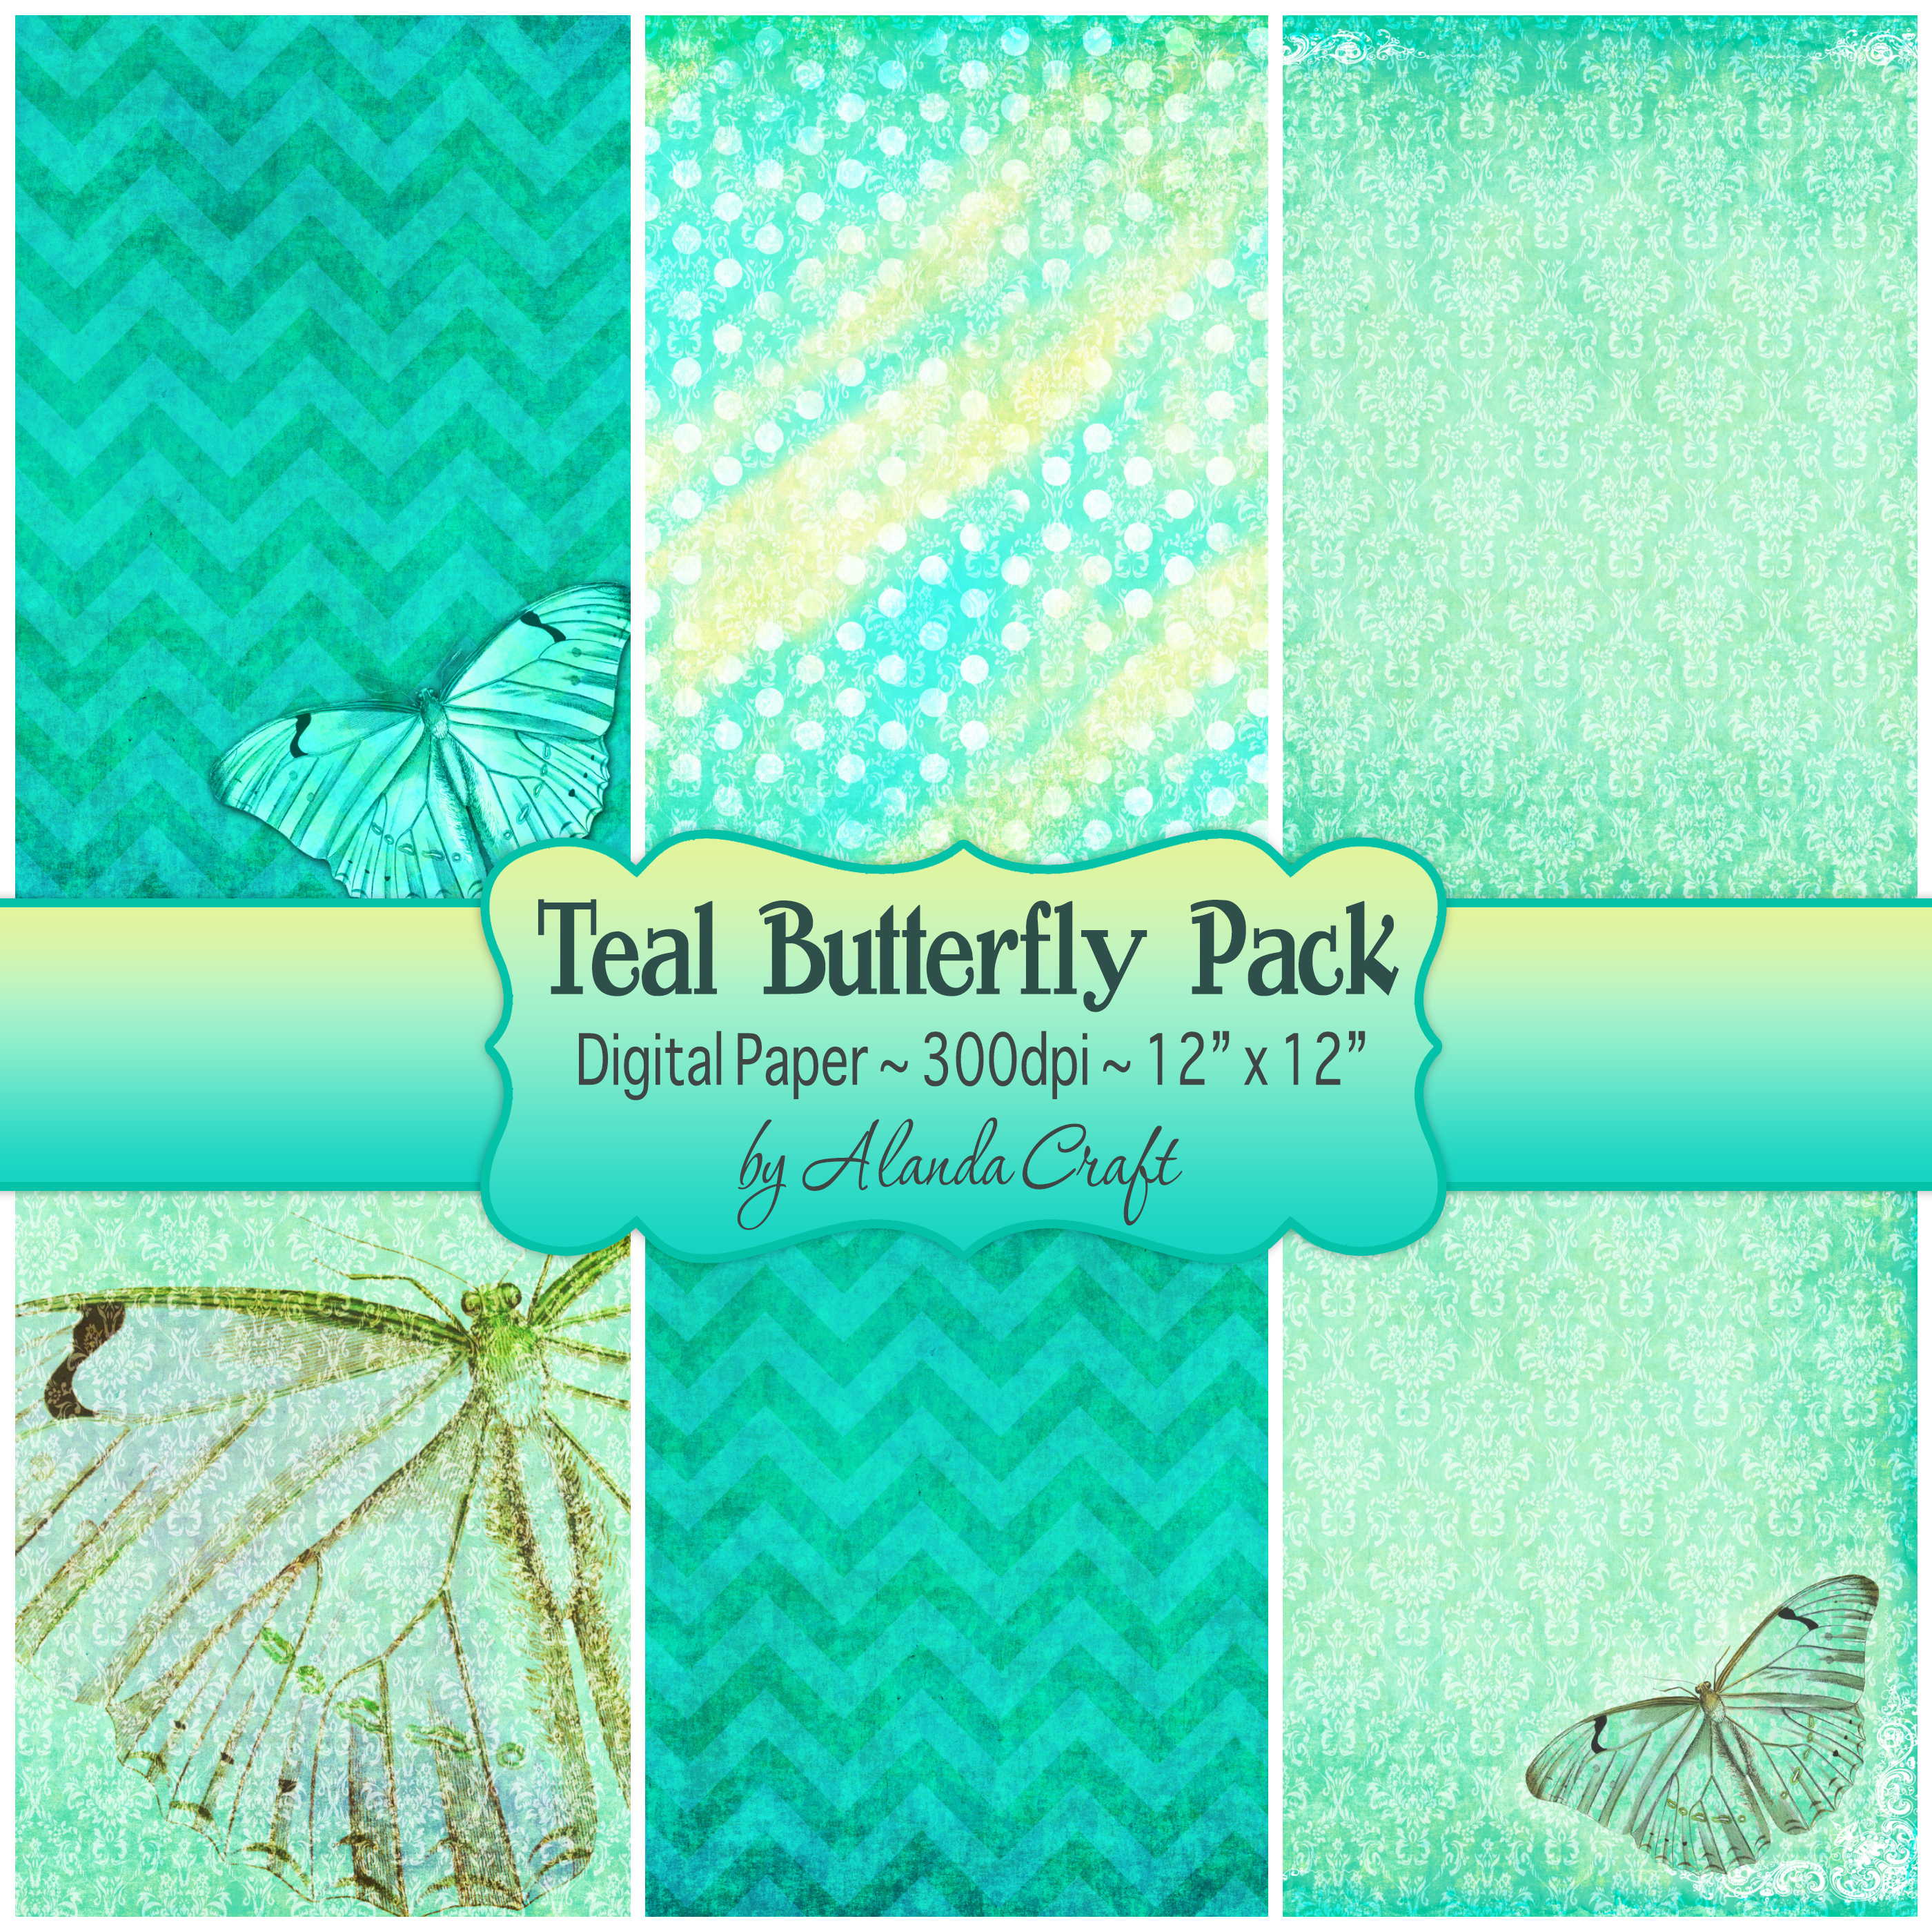 Teal Butterfly Backgrounds